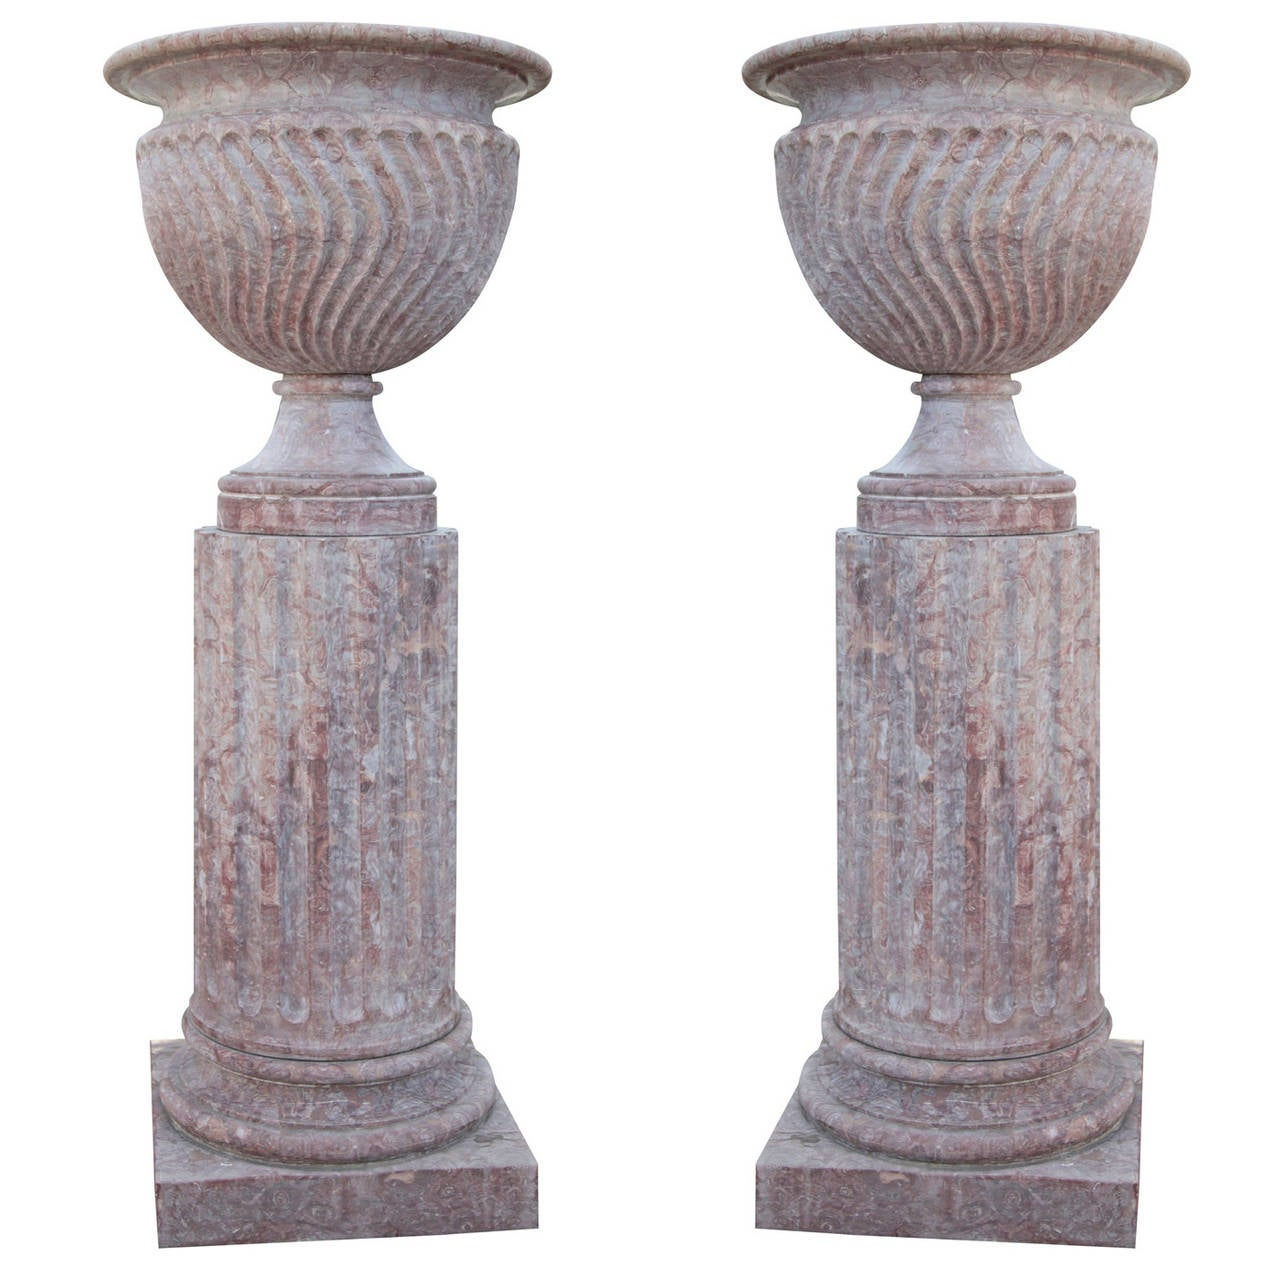 Pair of Monumental Italian Marble Vases with Pedestals from the 20th Century